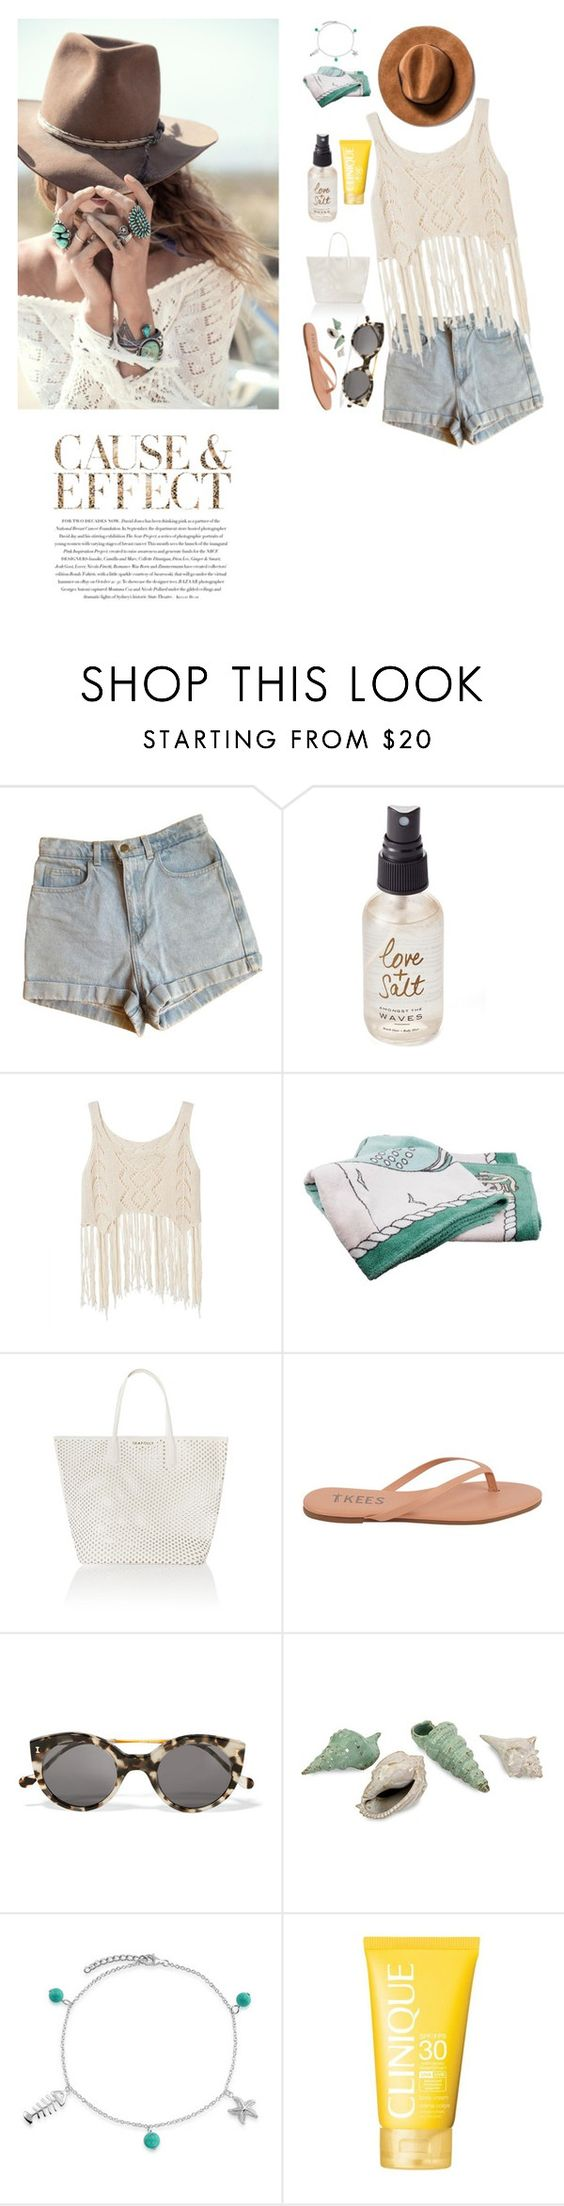 """Untitled #525"" by fashionista9000 ❤ liked on Polyvore featuring Spell & the Gypsy Collective, Envi, American Apparel, Olivine, Hermès, Seafolly, Tkees, Illesteva, Bling Jewelry and Clinique"